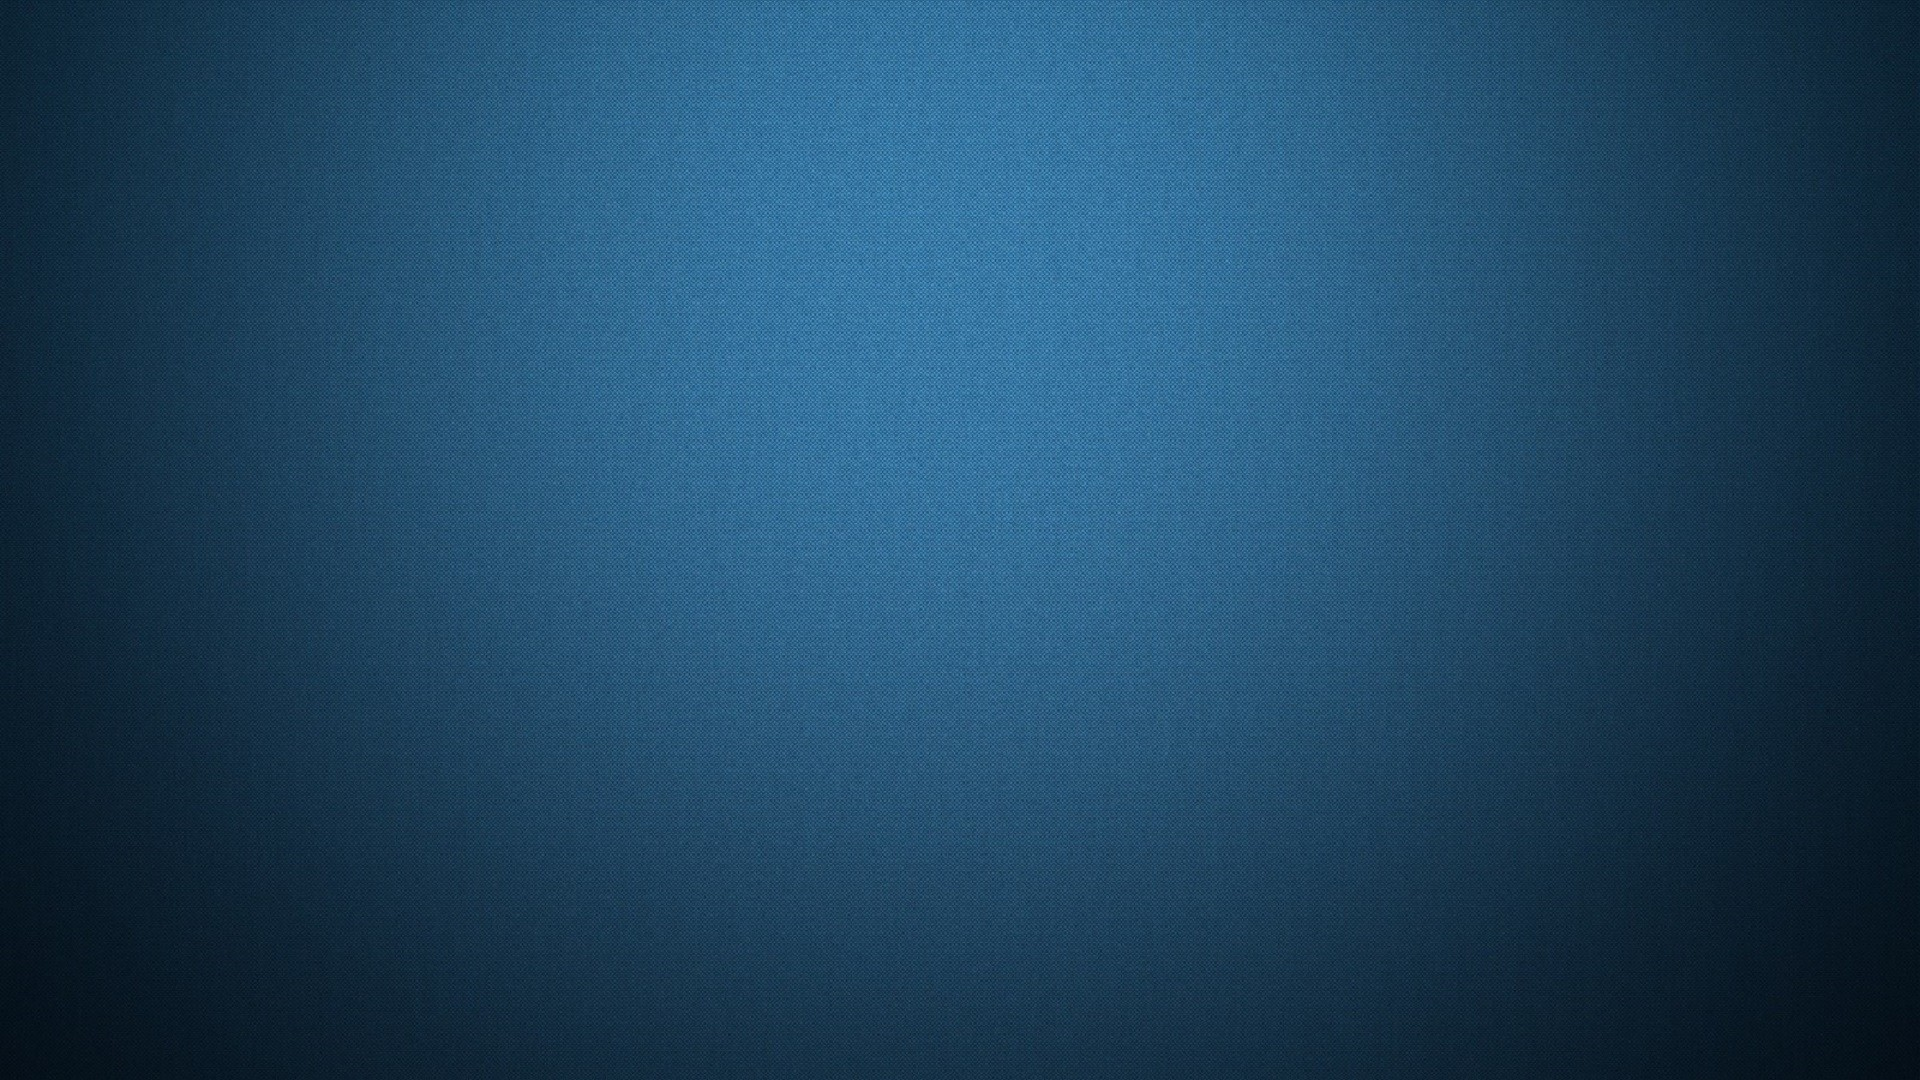 1920x1080 Solid Color Background Teal Free blue lor backgrounds just #5926